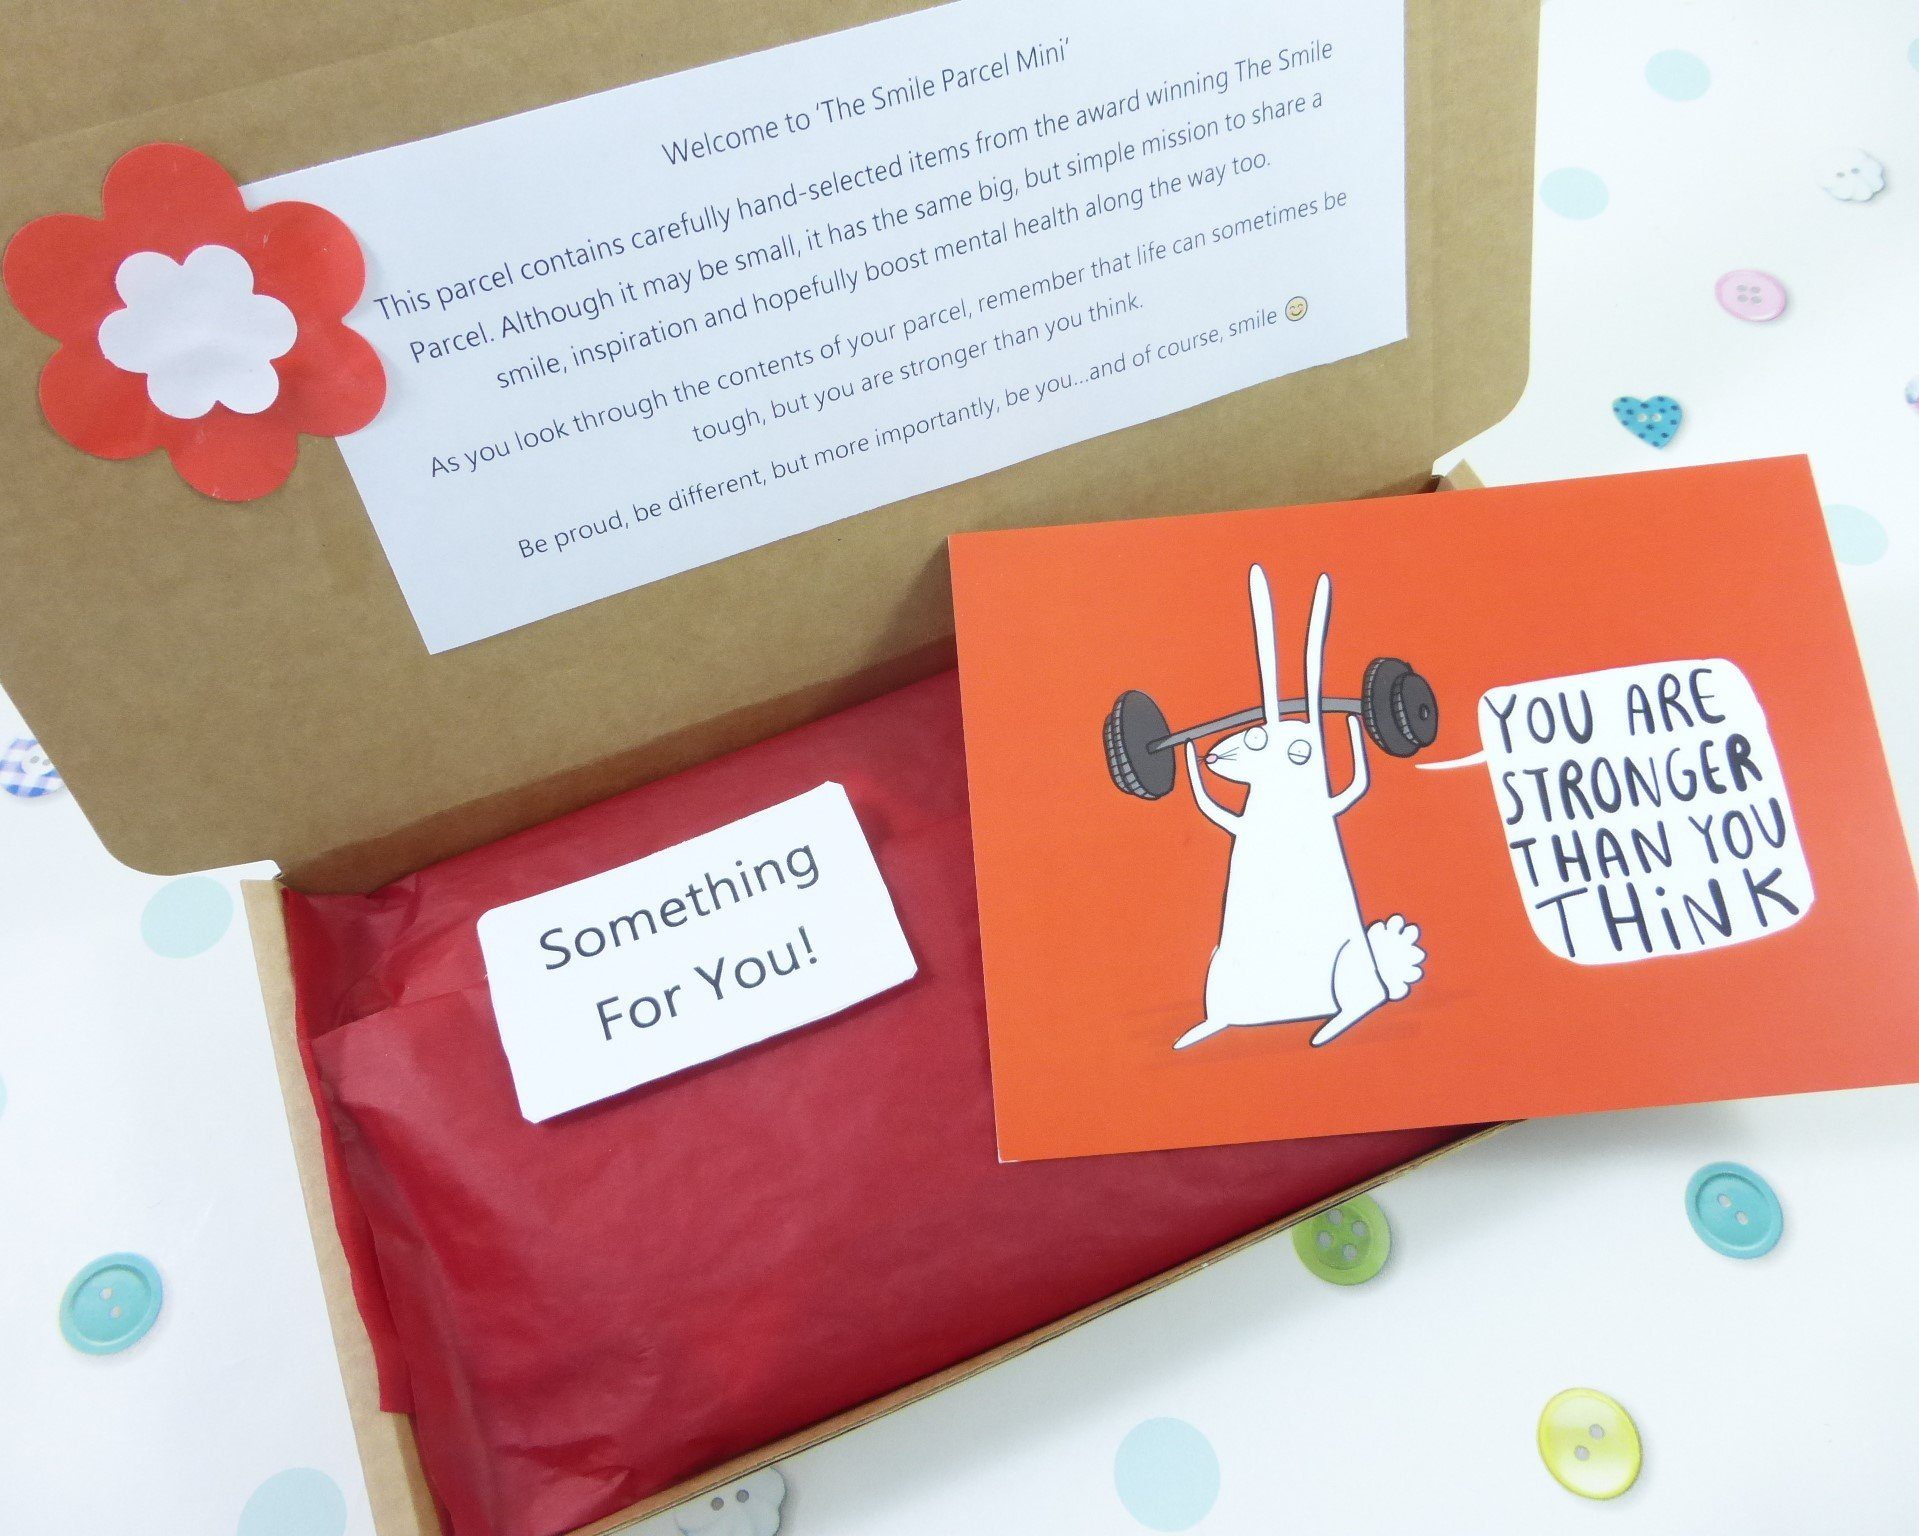 Red Letterbox Friendly, Pick Me Up Gift, The Smile Parcel Mini, Self Care Box, Mental Health Gift, Wellbeing Box Kind Shop 2